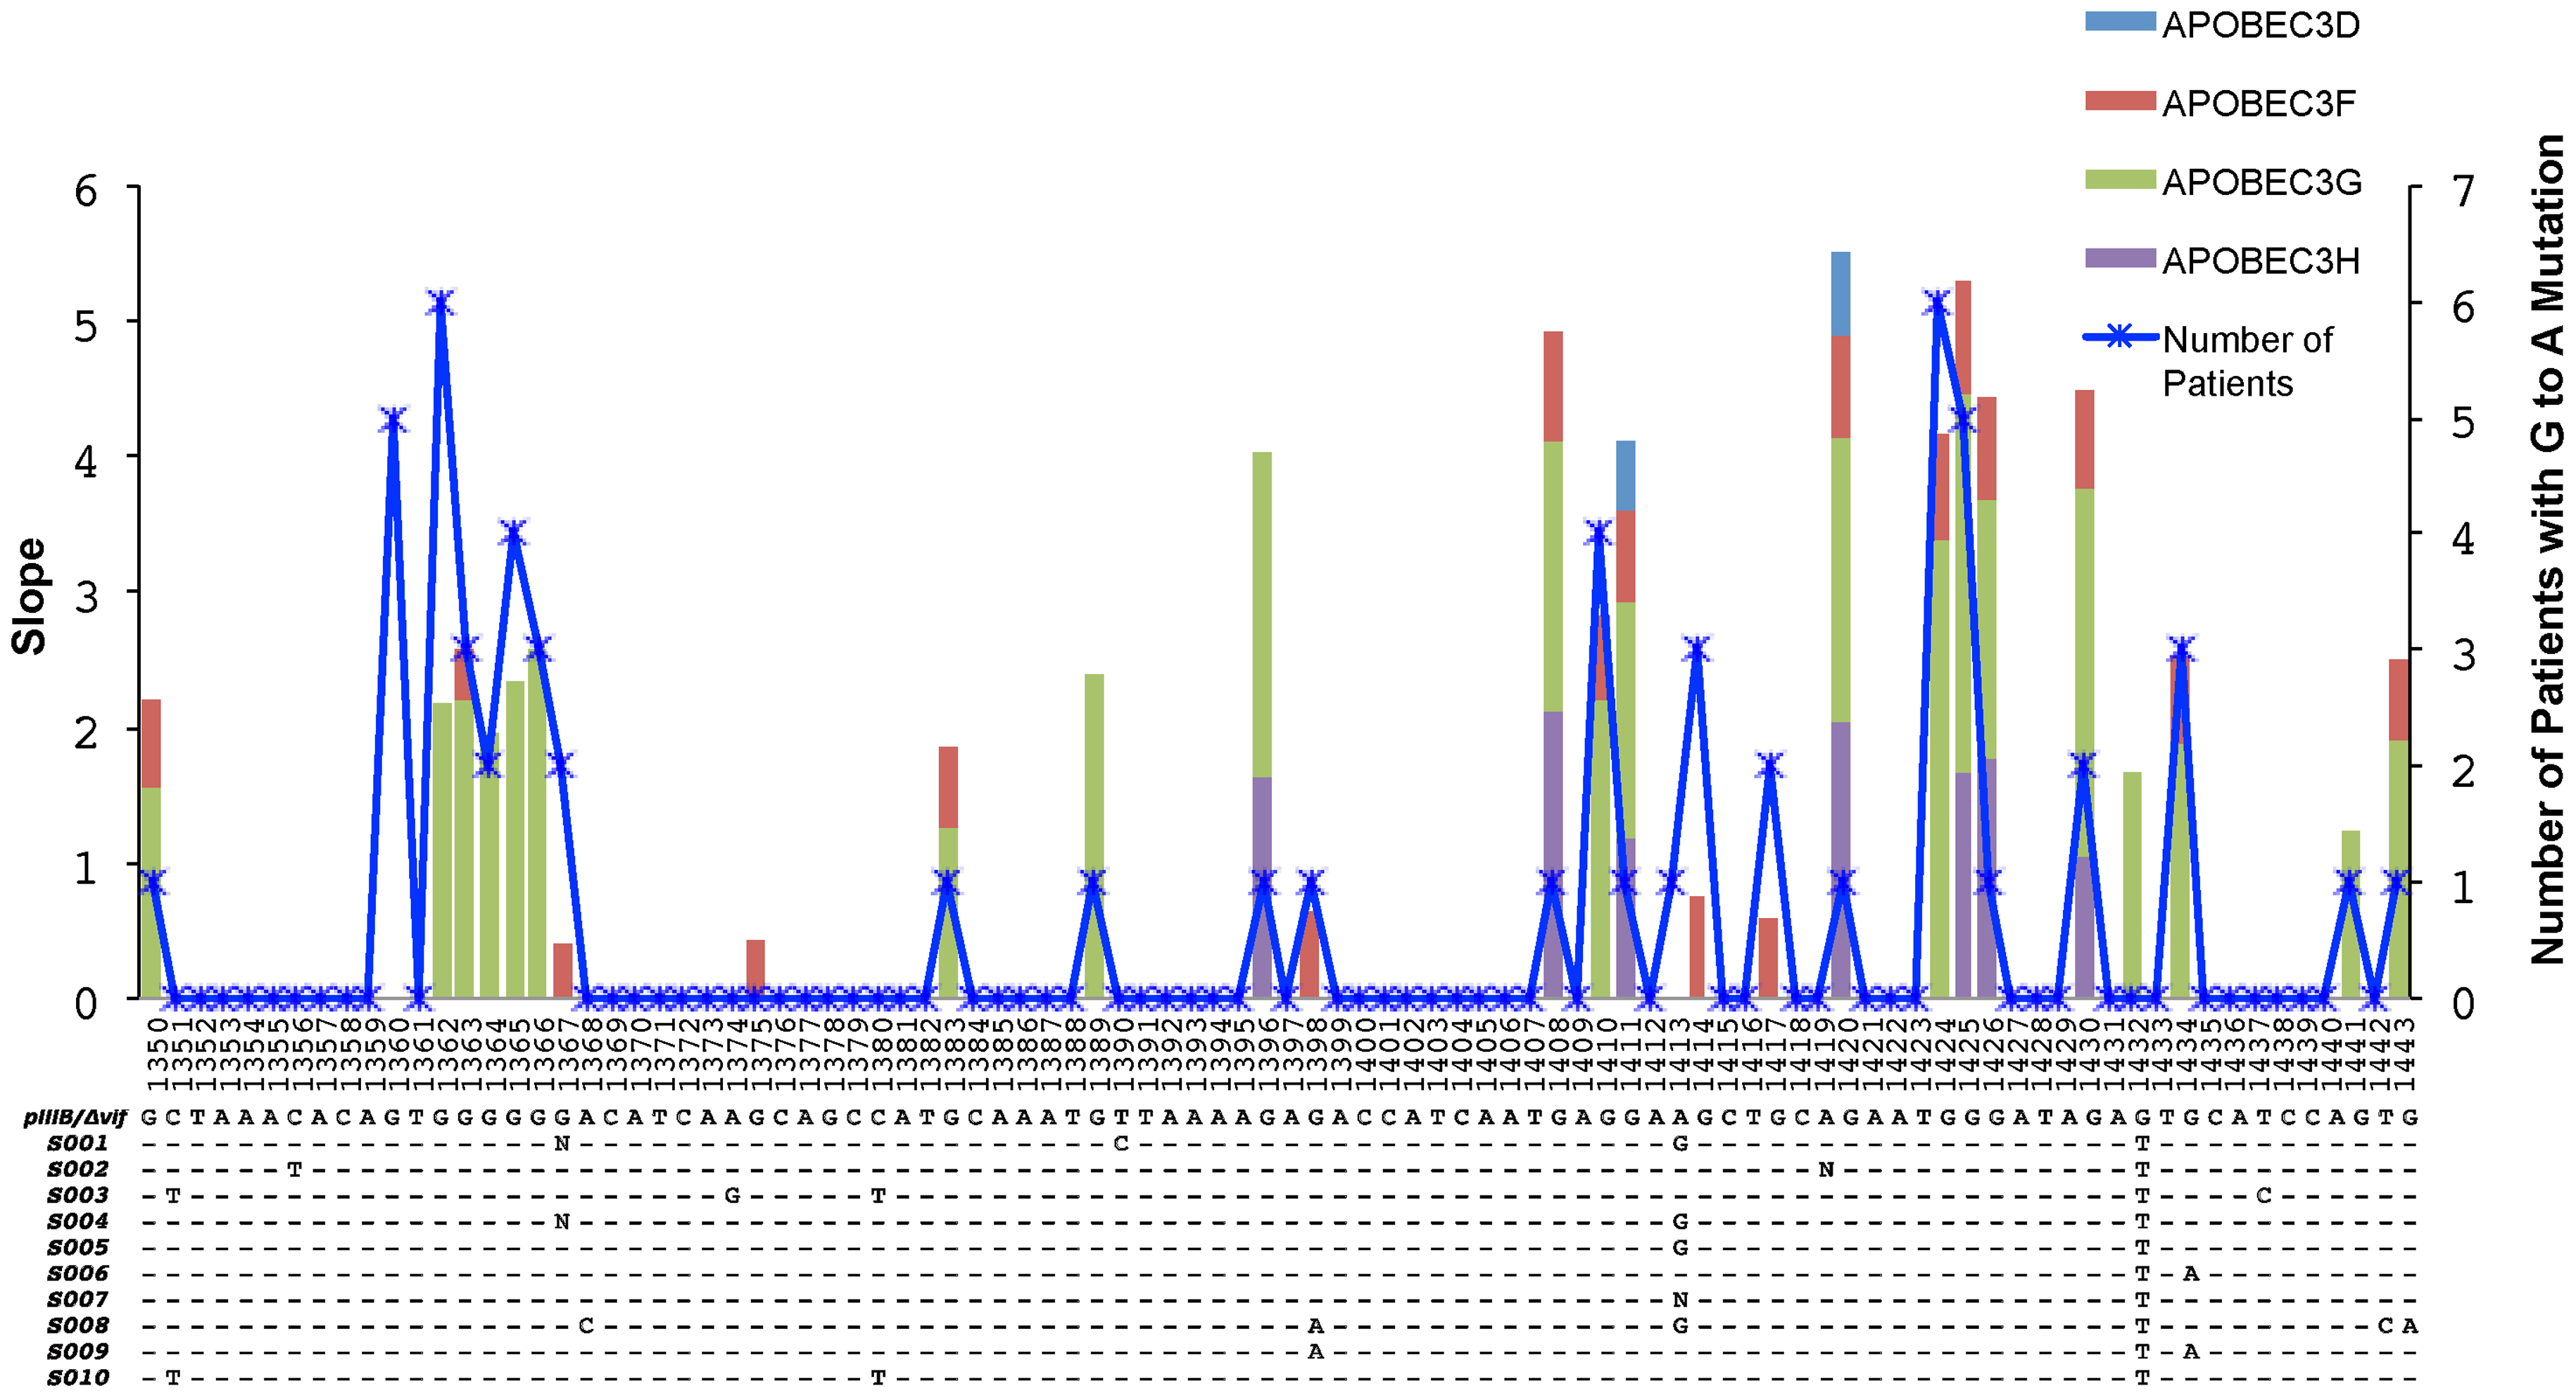 Overlap of the APOBEC3 edited HIV-1 genomes in cell culture experiments and in patients.